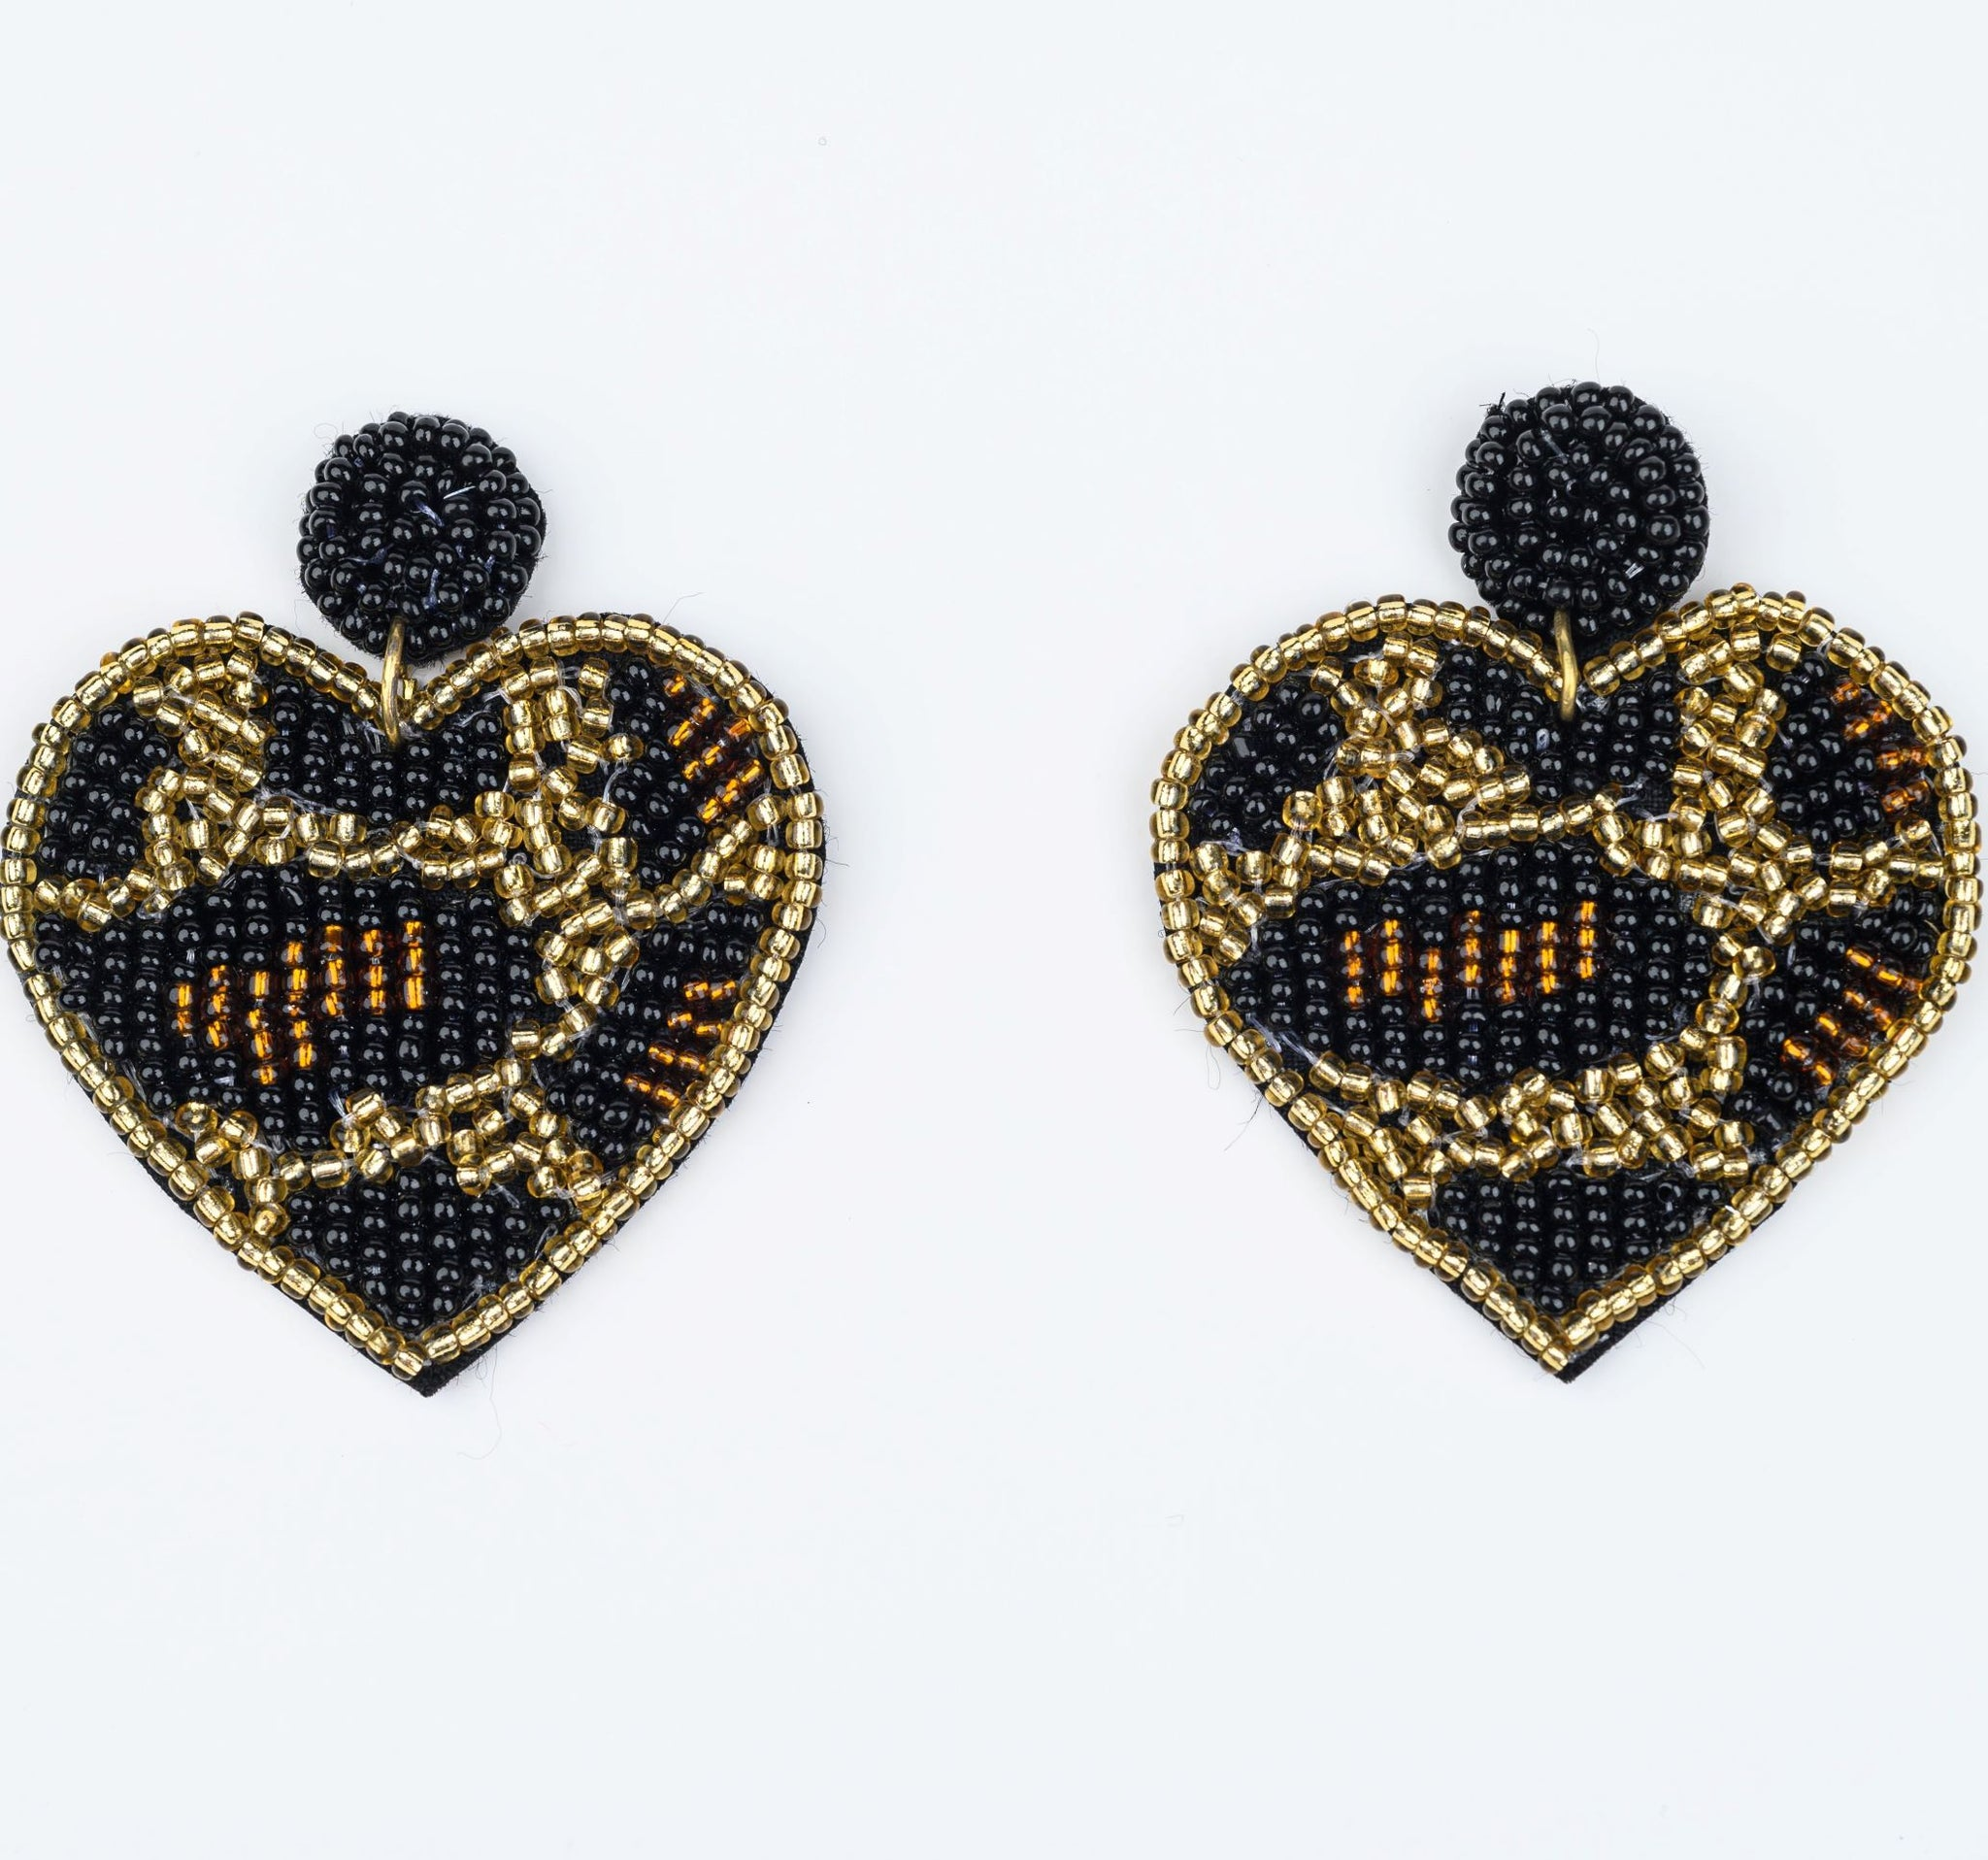 Leopard Print Beaded Heart Earrings Accessories Show Your Africa